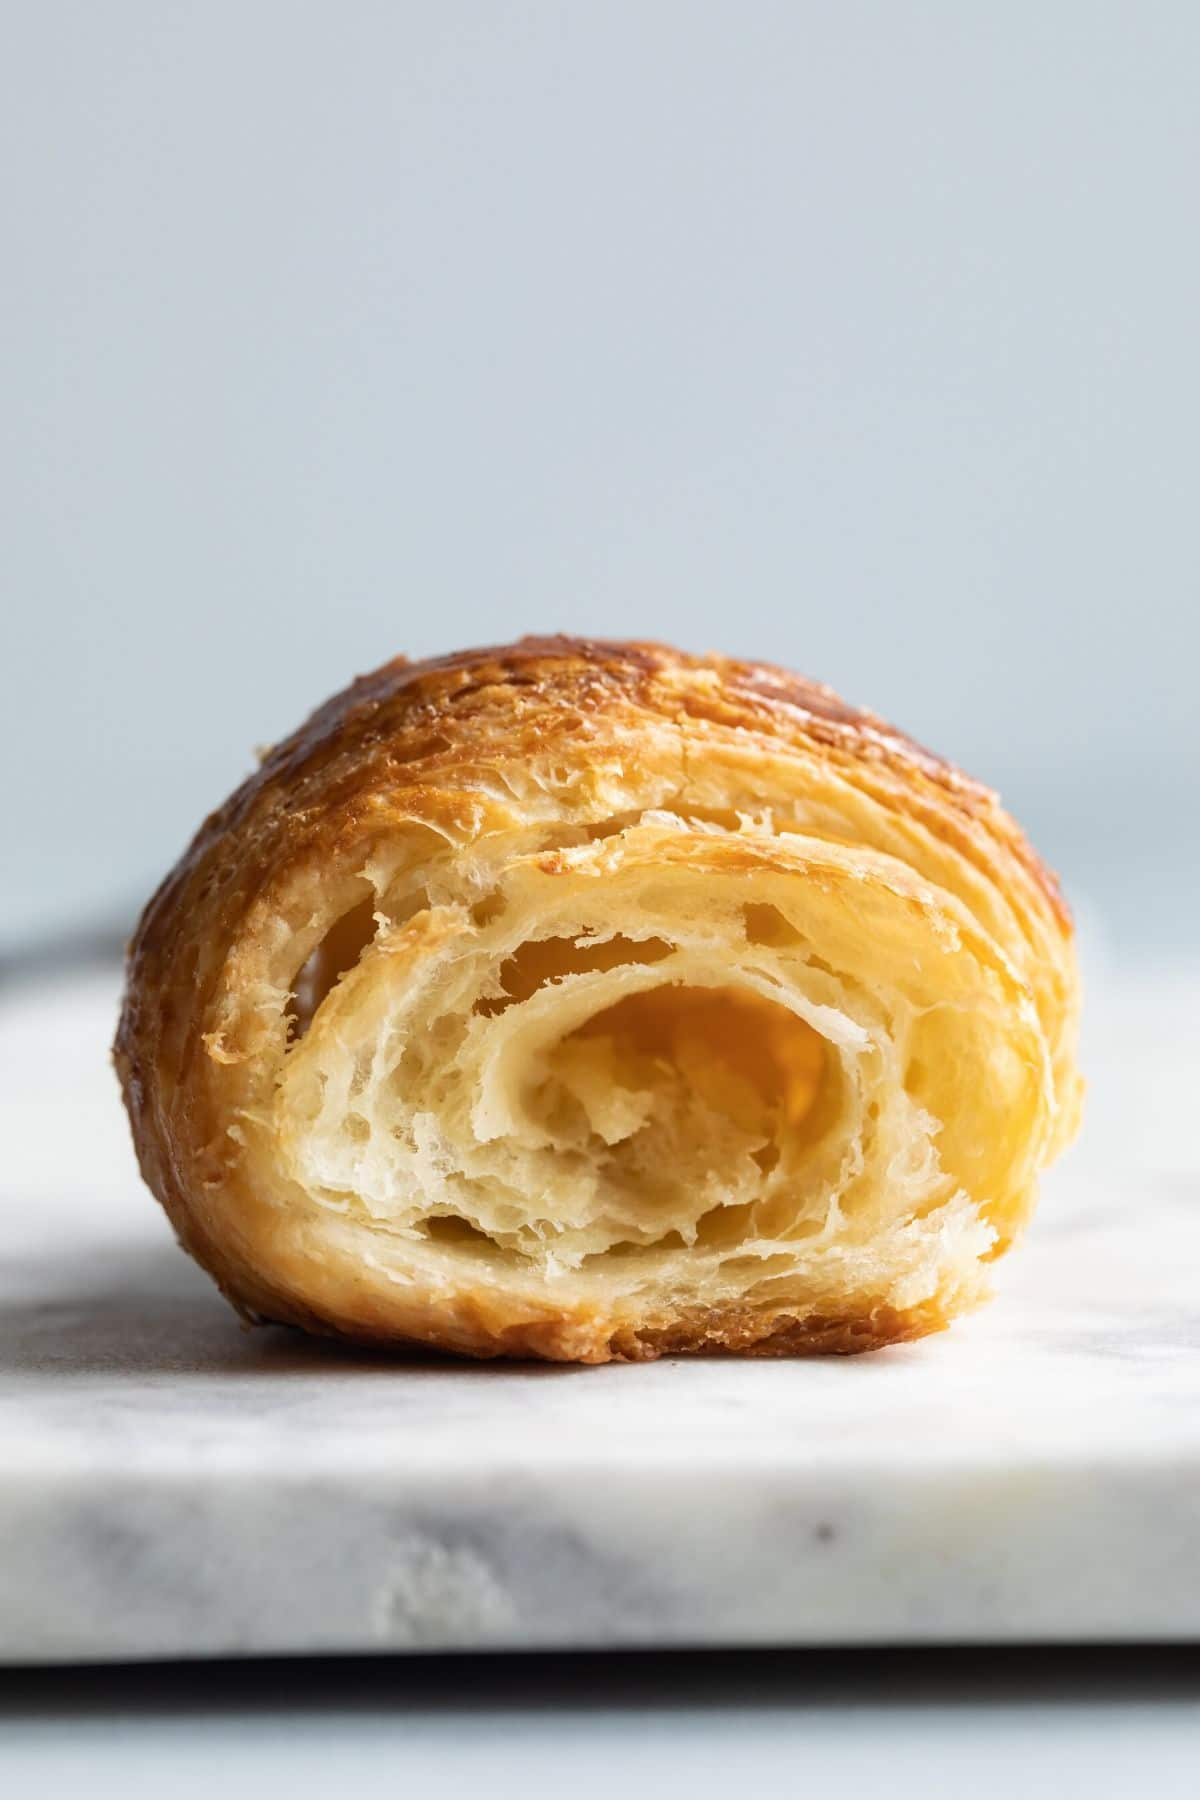 Close up of the inside of a croissant